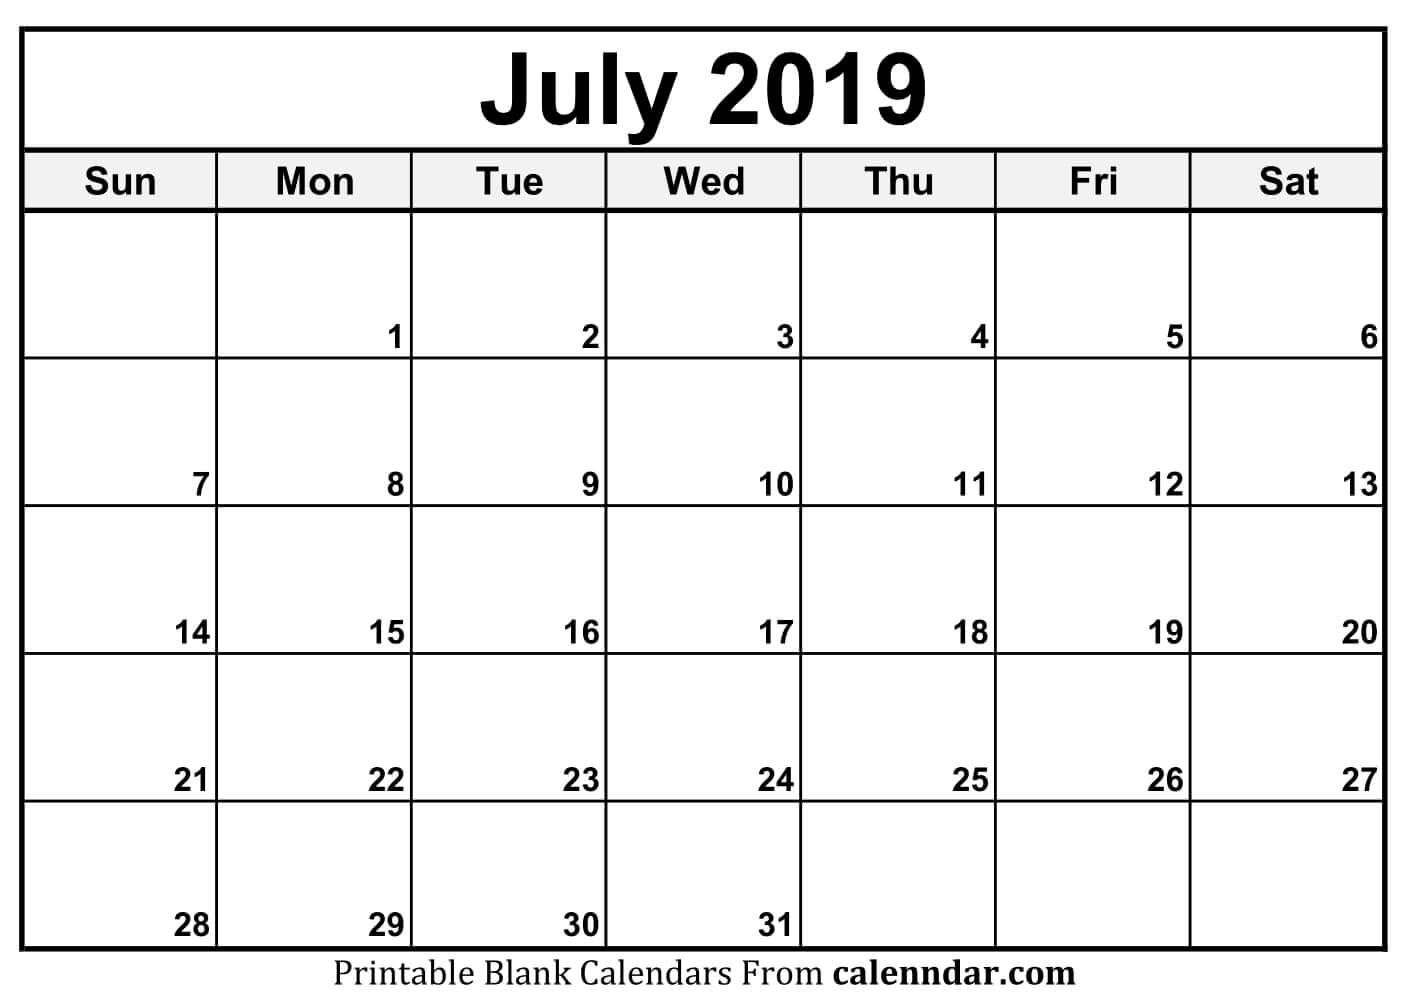 Editable July 2019 Calendar Printable Template With Holidays